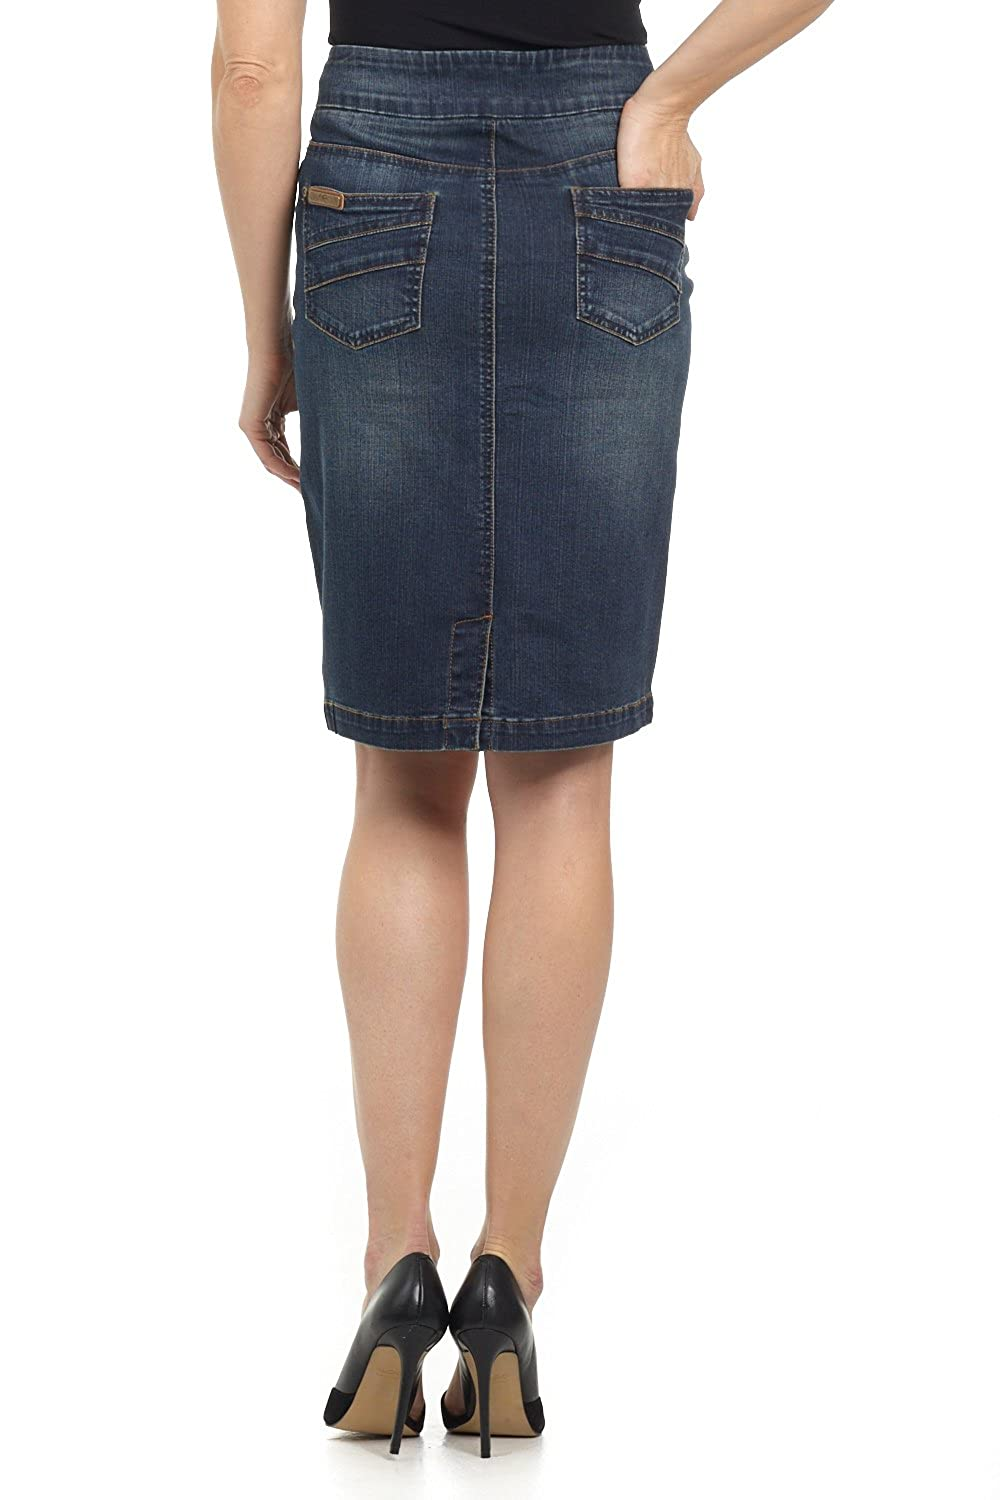 975a8135a2 Rekucci Jeans Women's Ease in to Comfort Fit Pull-on Stretch Denim Skirt at  Amazon Women's Clothing store: